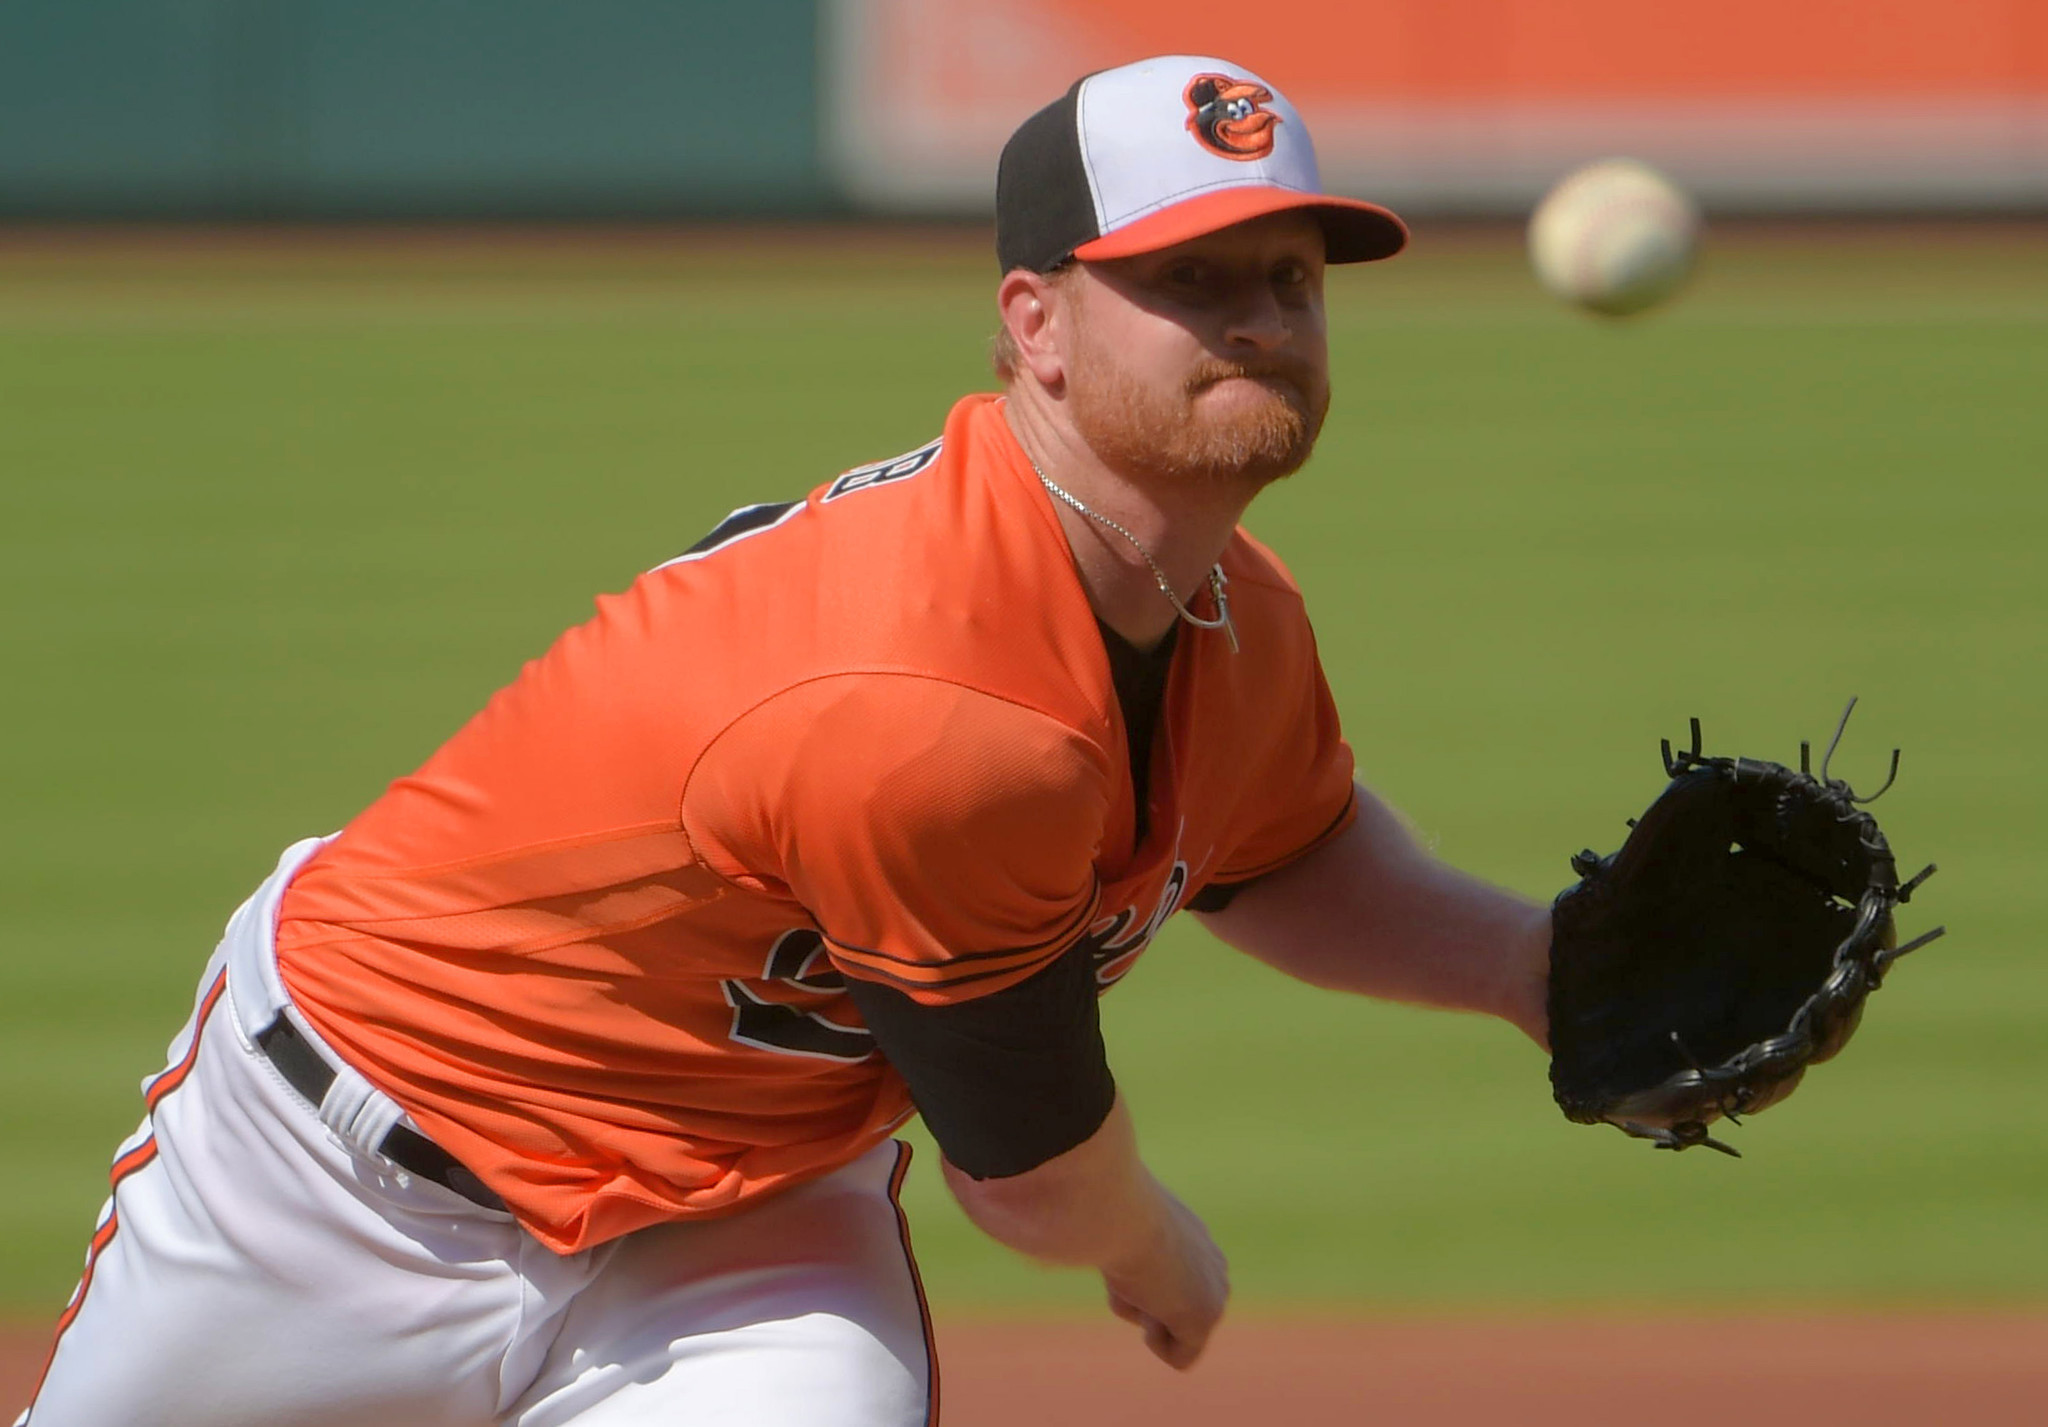 Bal-orioles-rewind-looking-back-at-saturday-s-5-4-loss-to-the-marlins-20180616